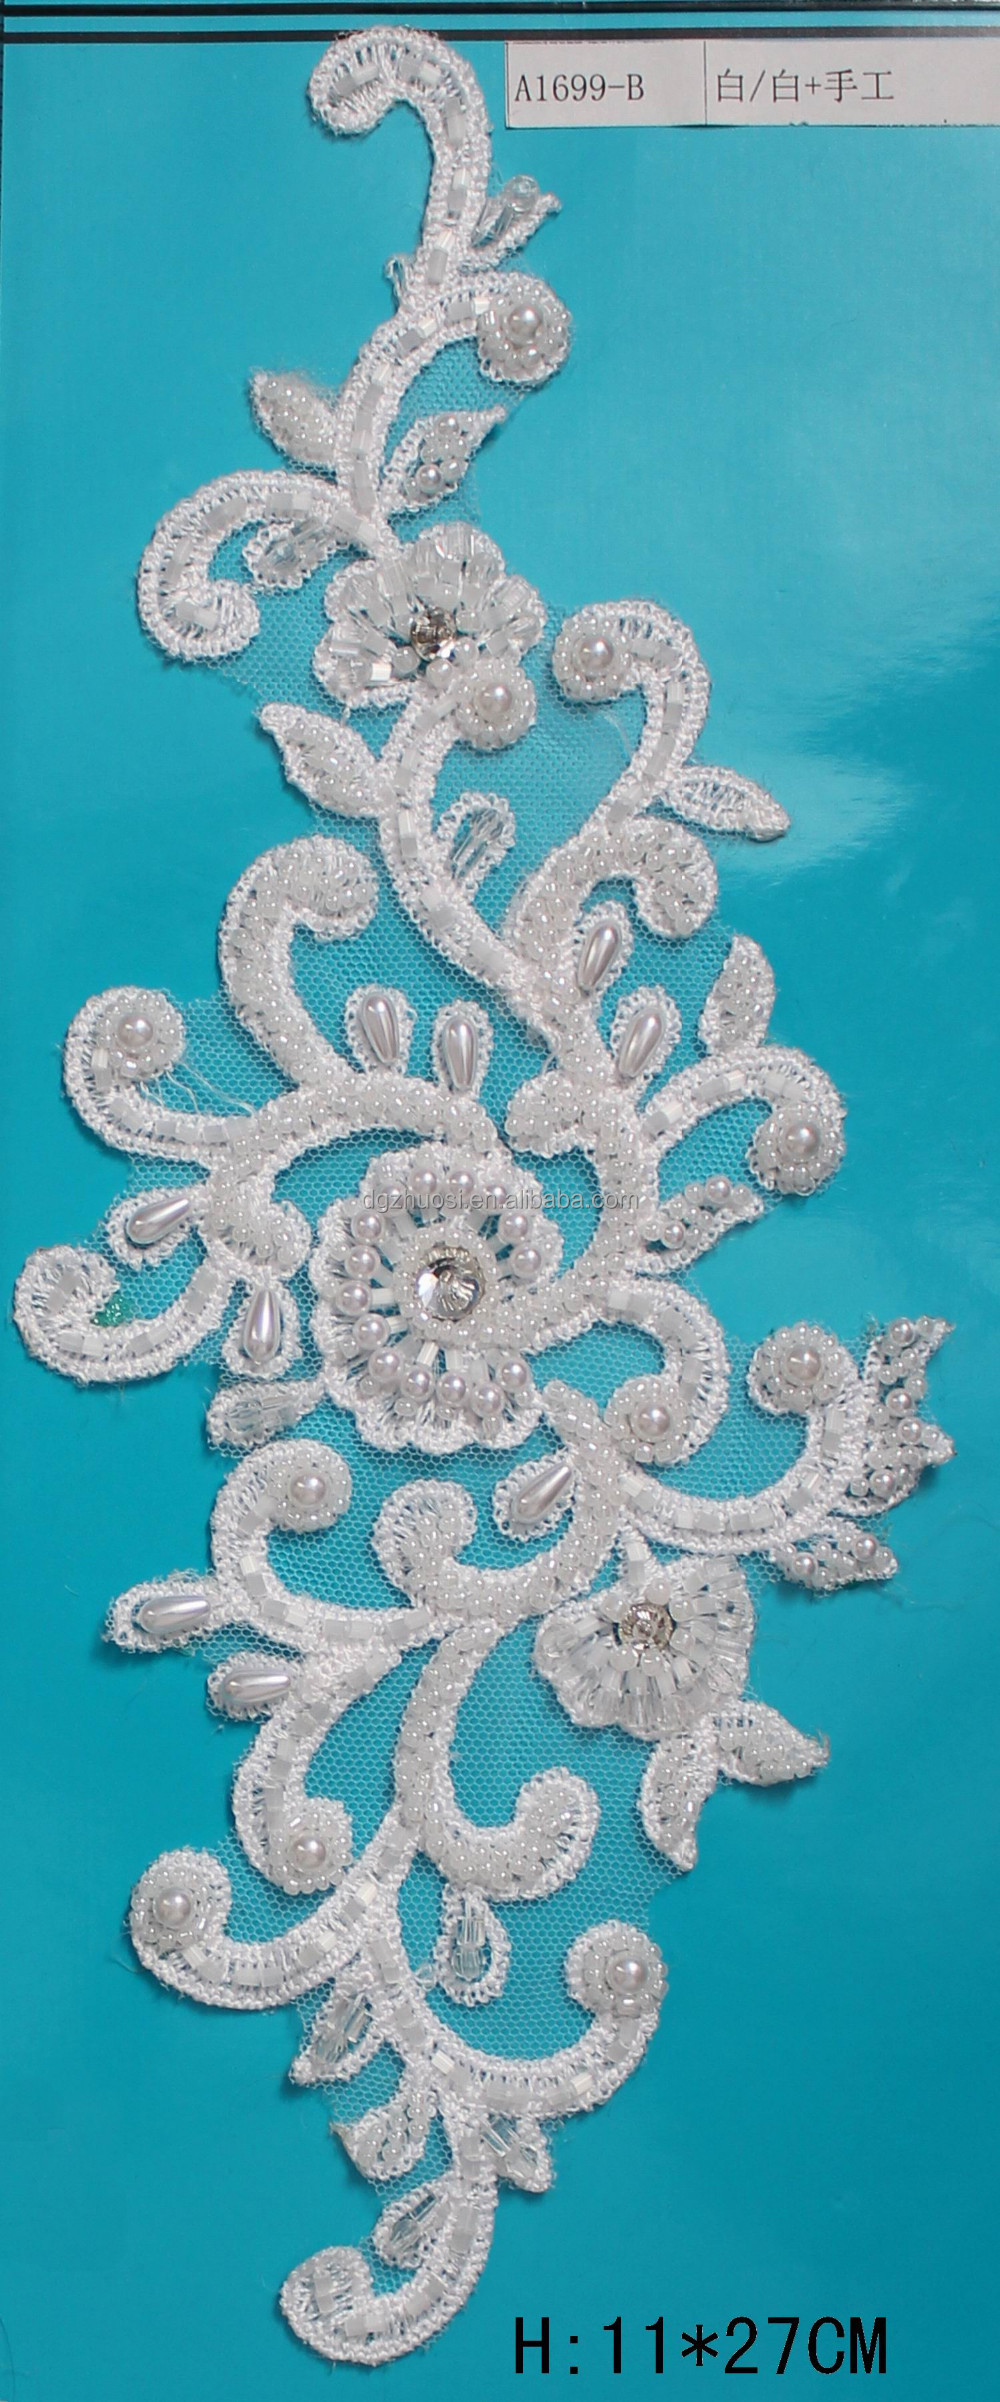 New embroidery wedding applique flowers beaded hand work design